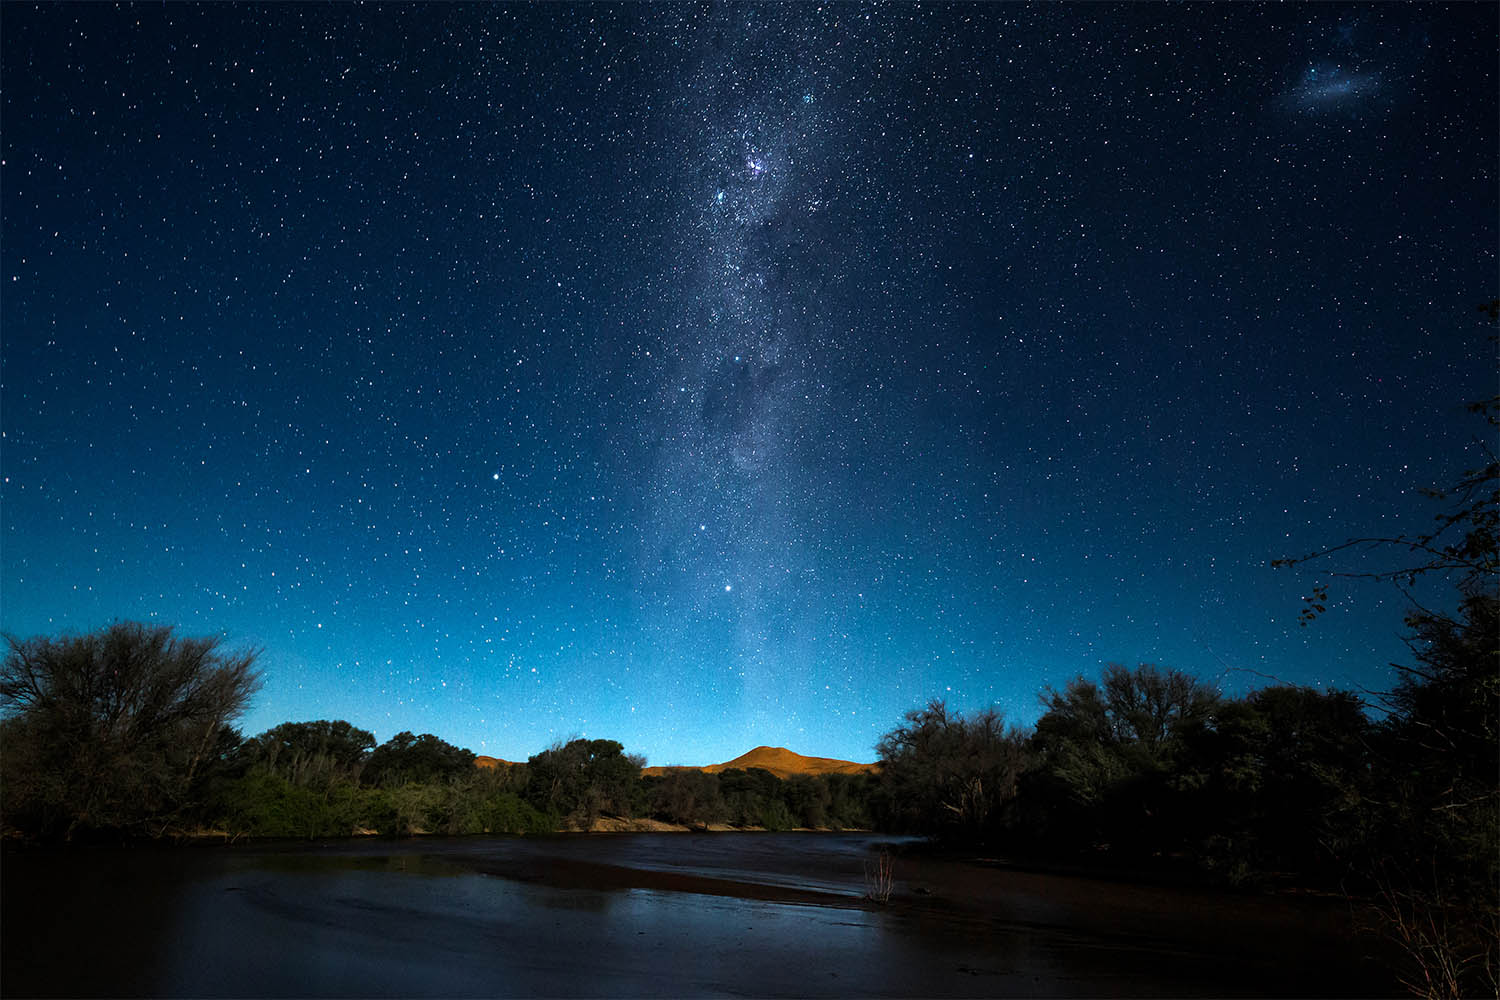 The Kuiseb River flows at night in the central Namib Desert